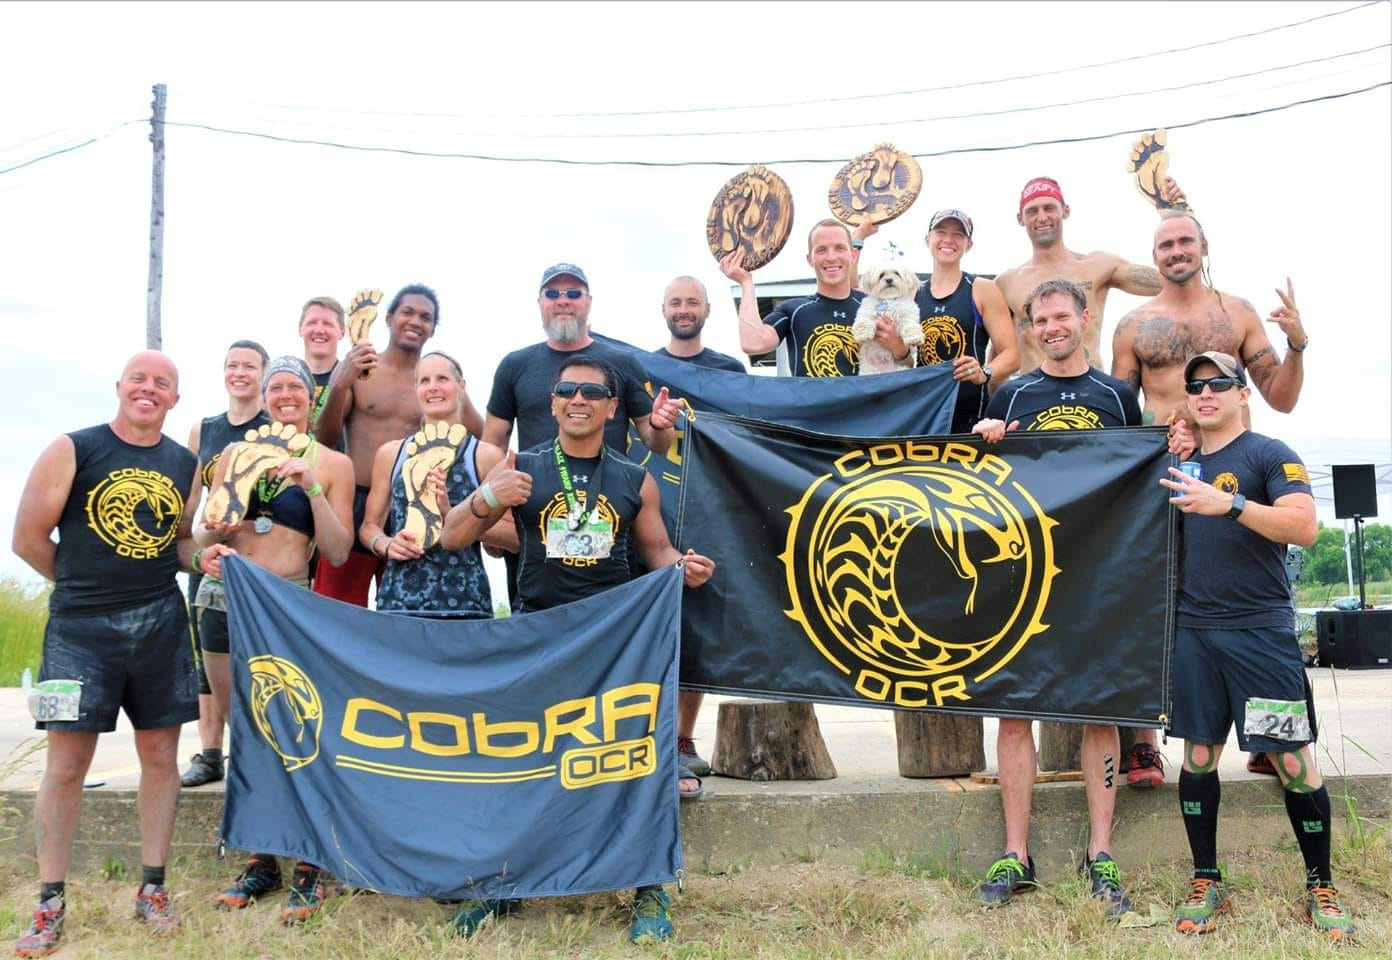 cf1327b46 Cleveland Obstacle Racing Alliance (CObRA) at one of Ohio's favorite races,  Black Swamp Runner.